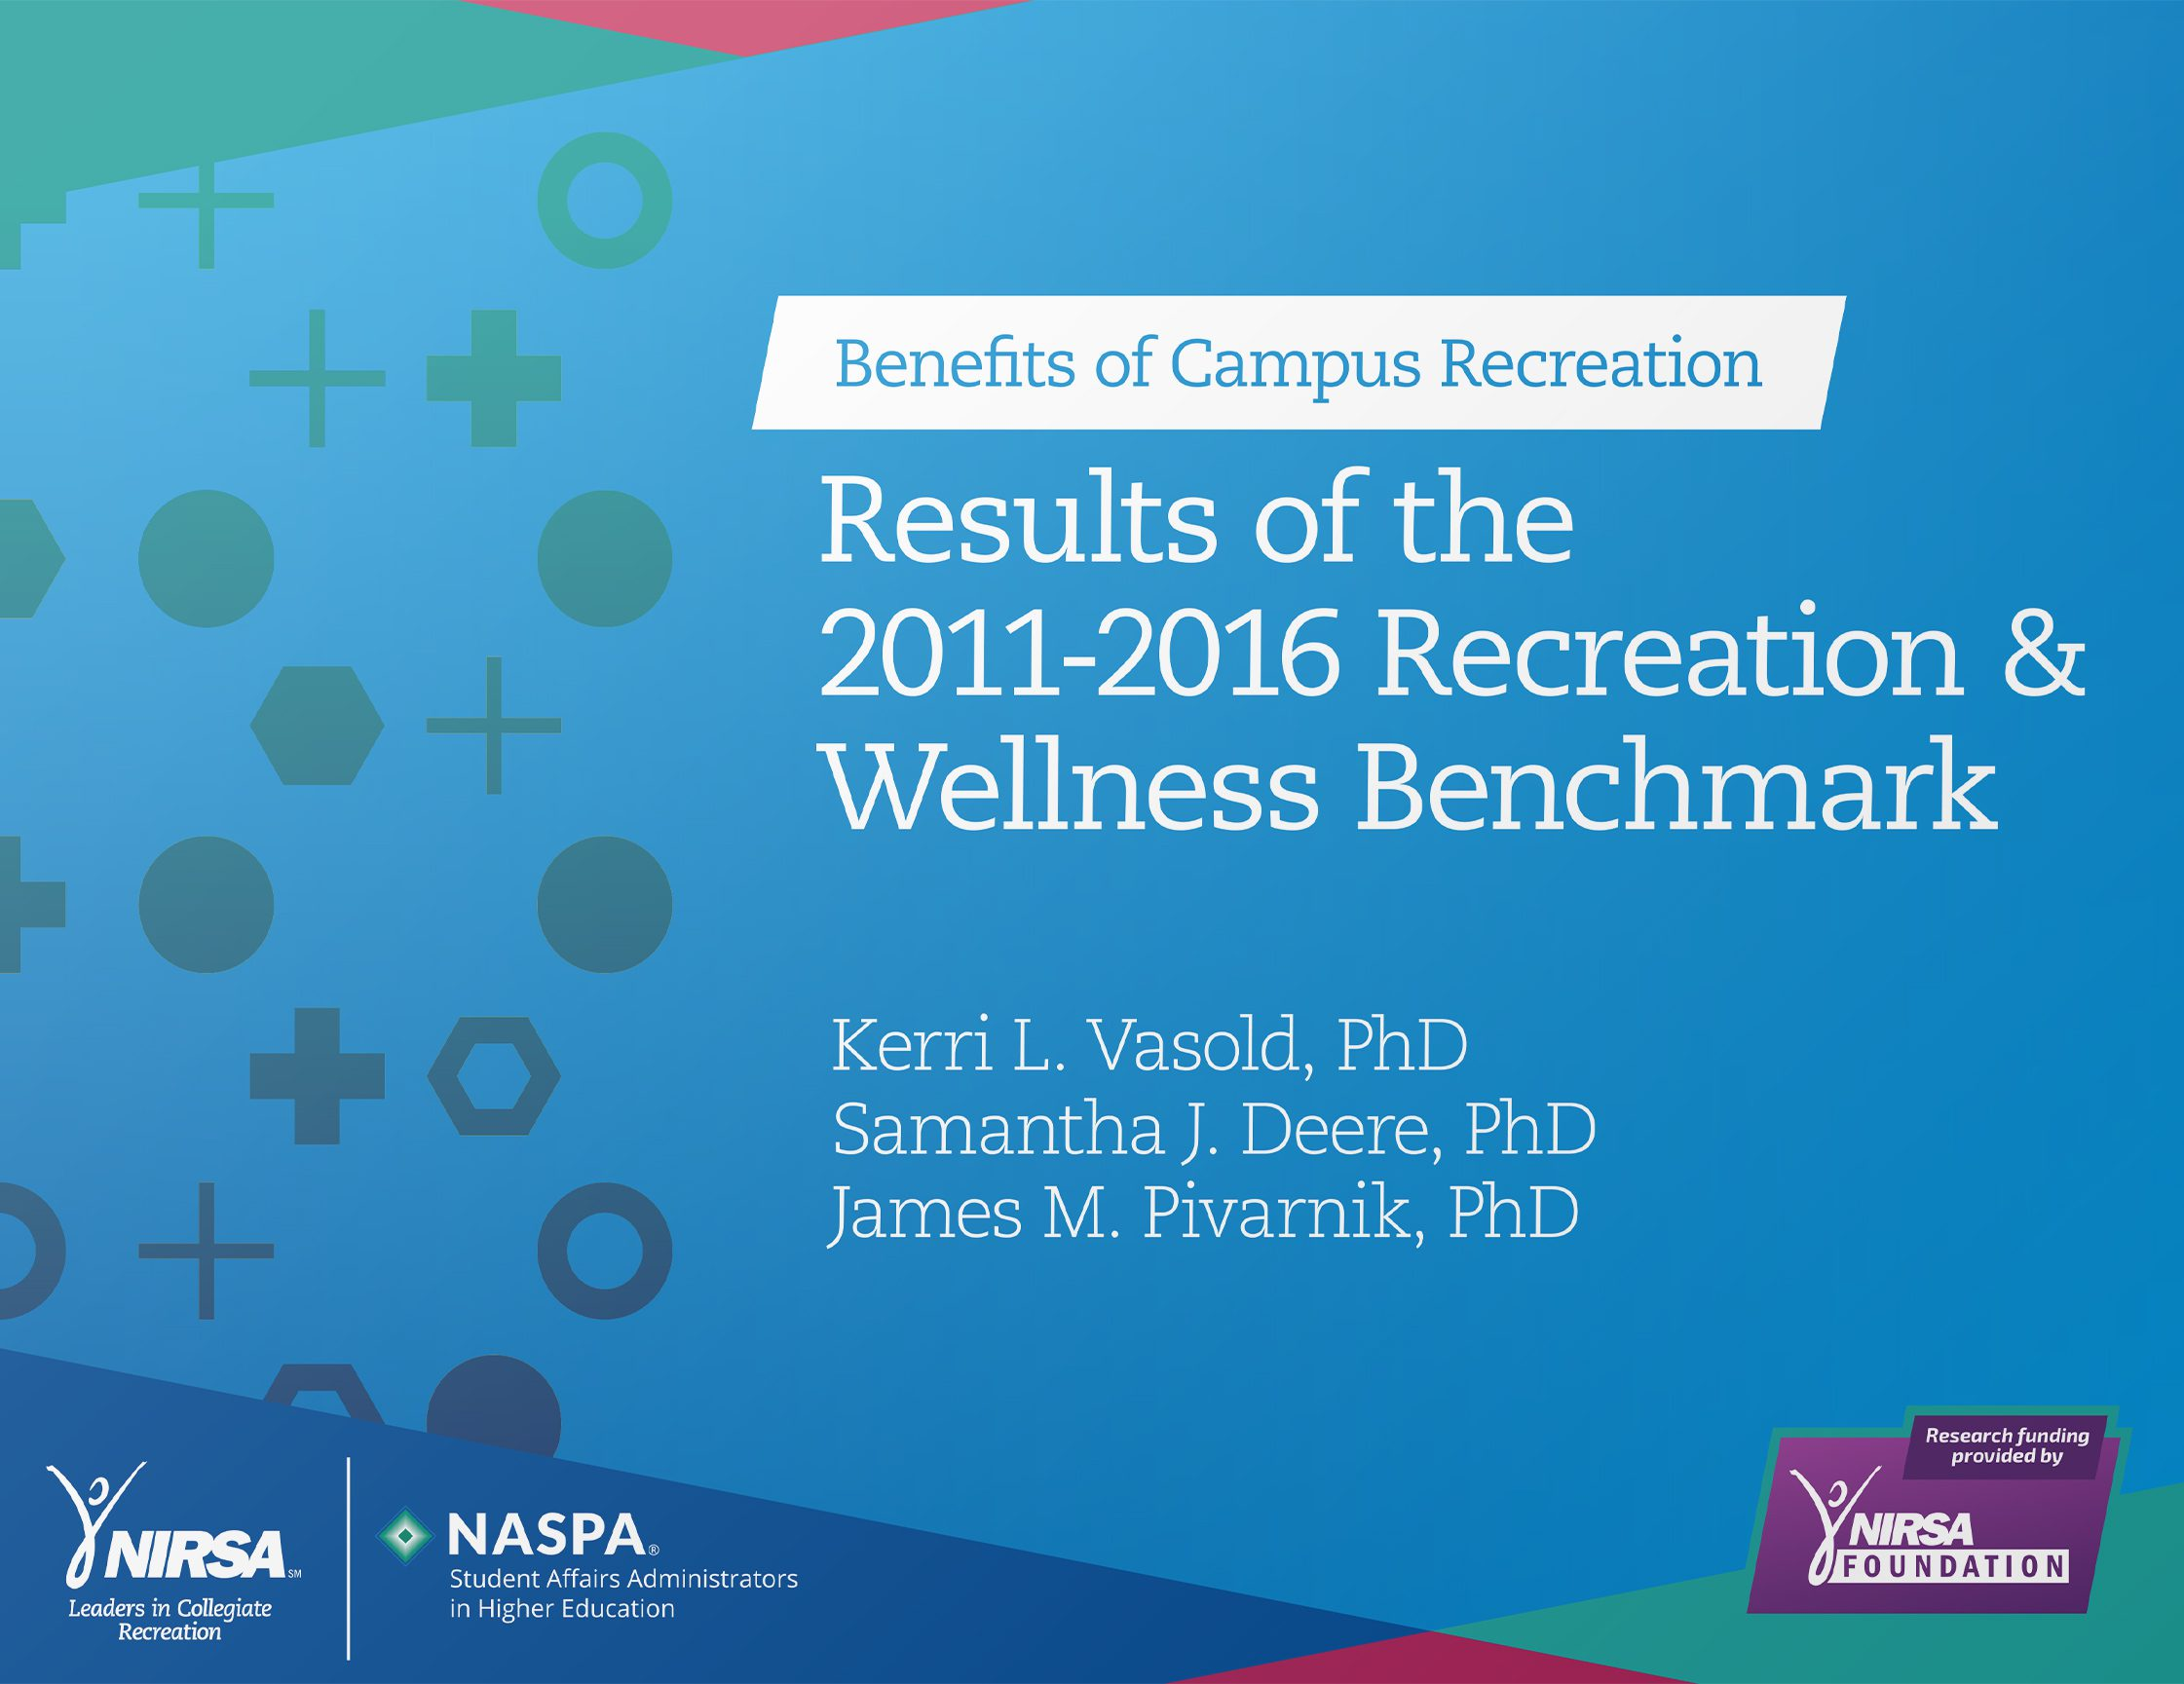 Download the Results of the 2011-2016 Recreation & Wellness Benchmark Report